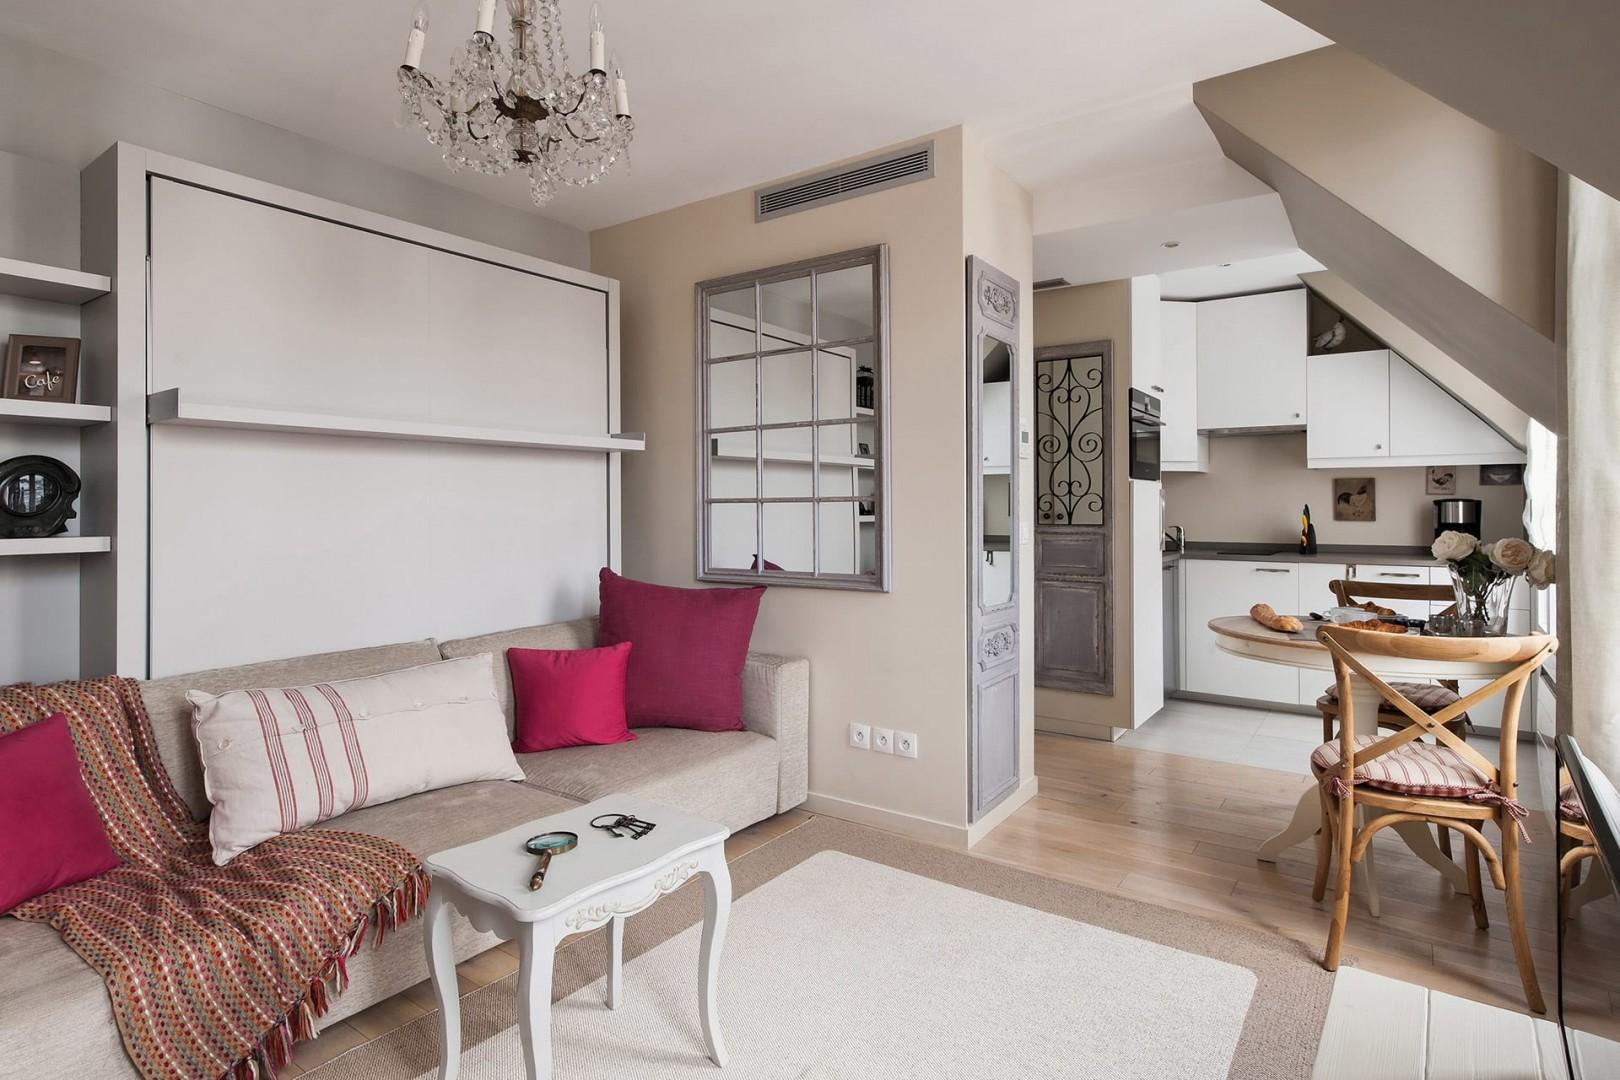 The open-plan design creates lots of space in this studio apartment.